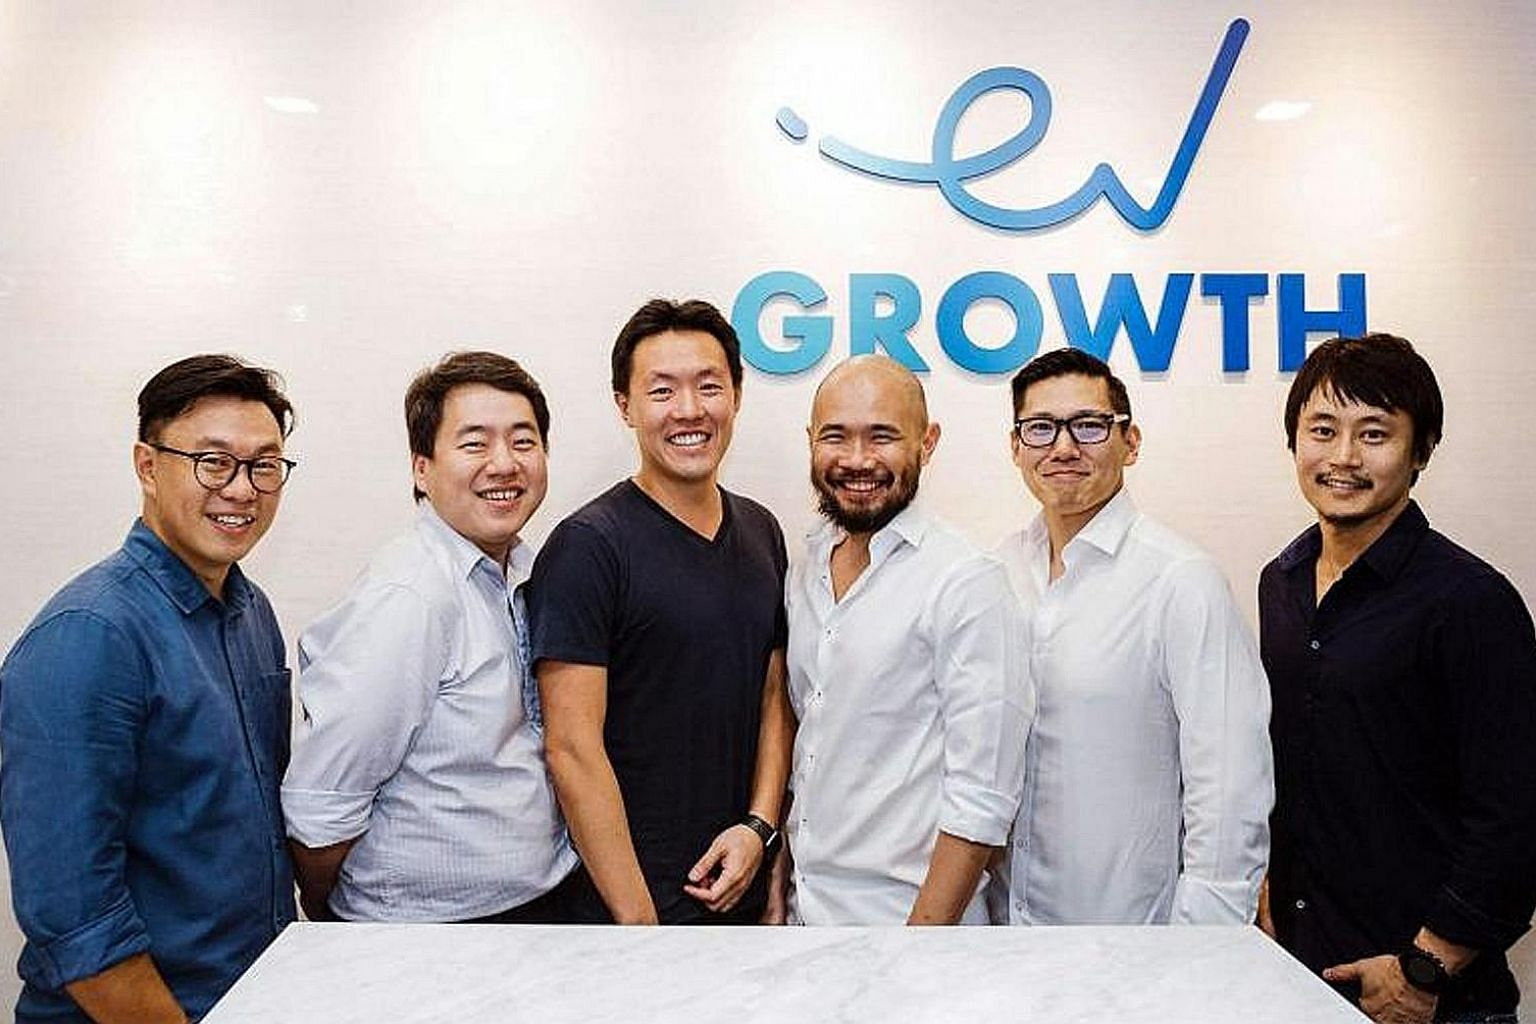 ShopBack chief executive officer Henry Chan (third from left) with the EV Growth team: (from left) managing partners Willson Cuaca and Roderick Purwana, adviser Batara Eto, managing partner Shinichiro Hori and vice-president of investment Yoshi Okubo